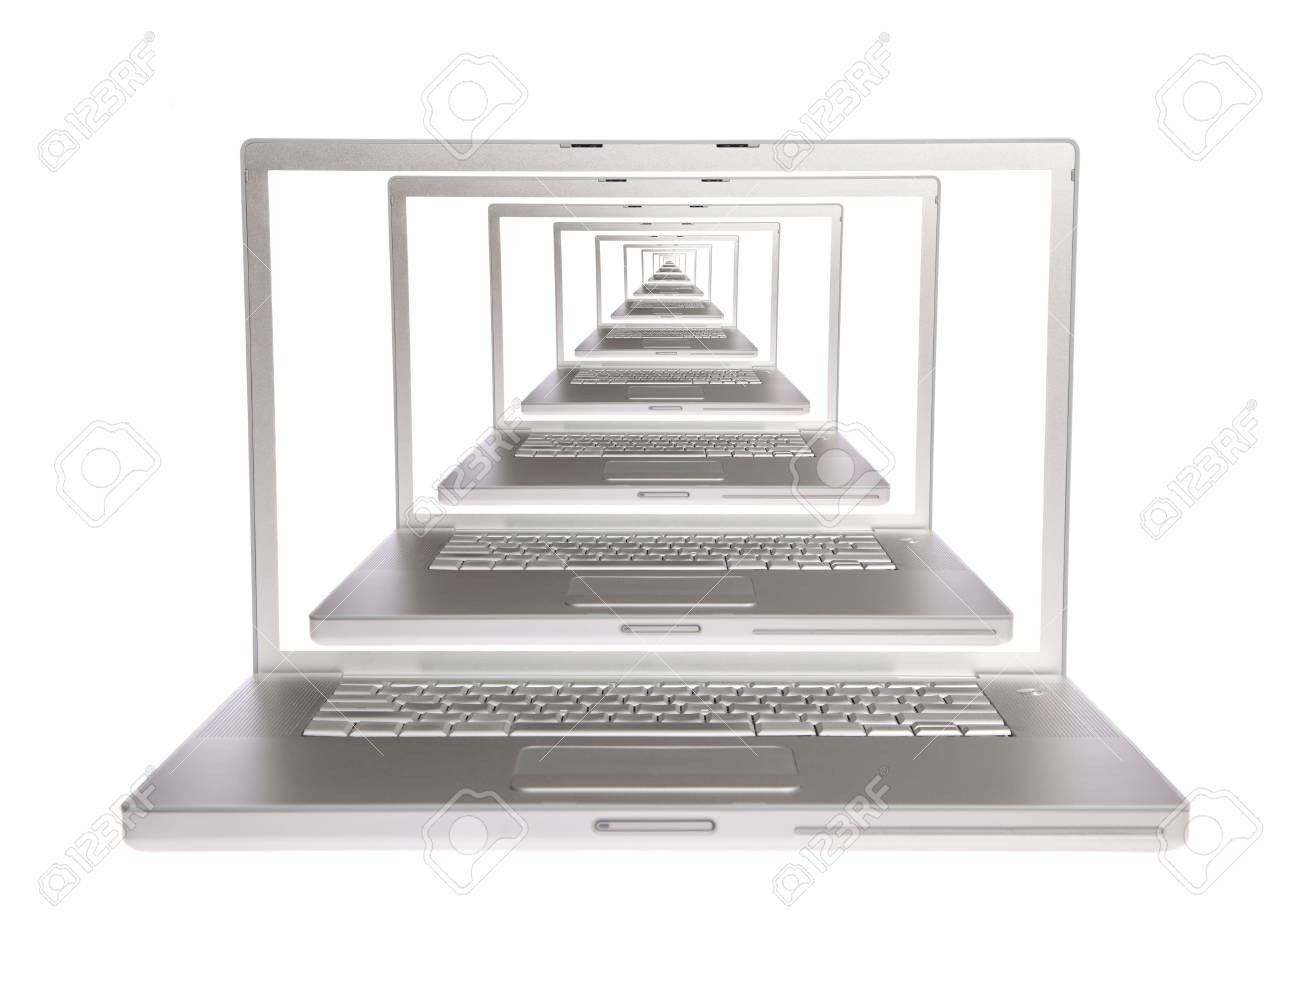 Laptops all in one on white isolated Stock Photo - 6128879